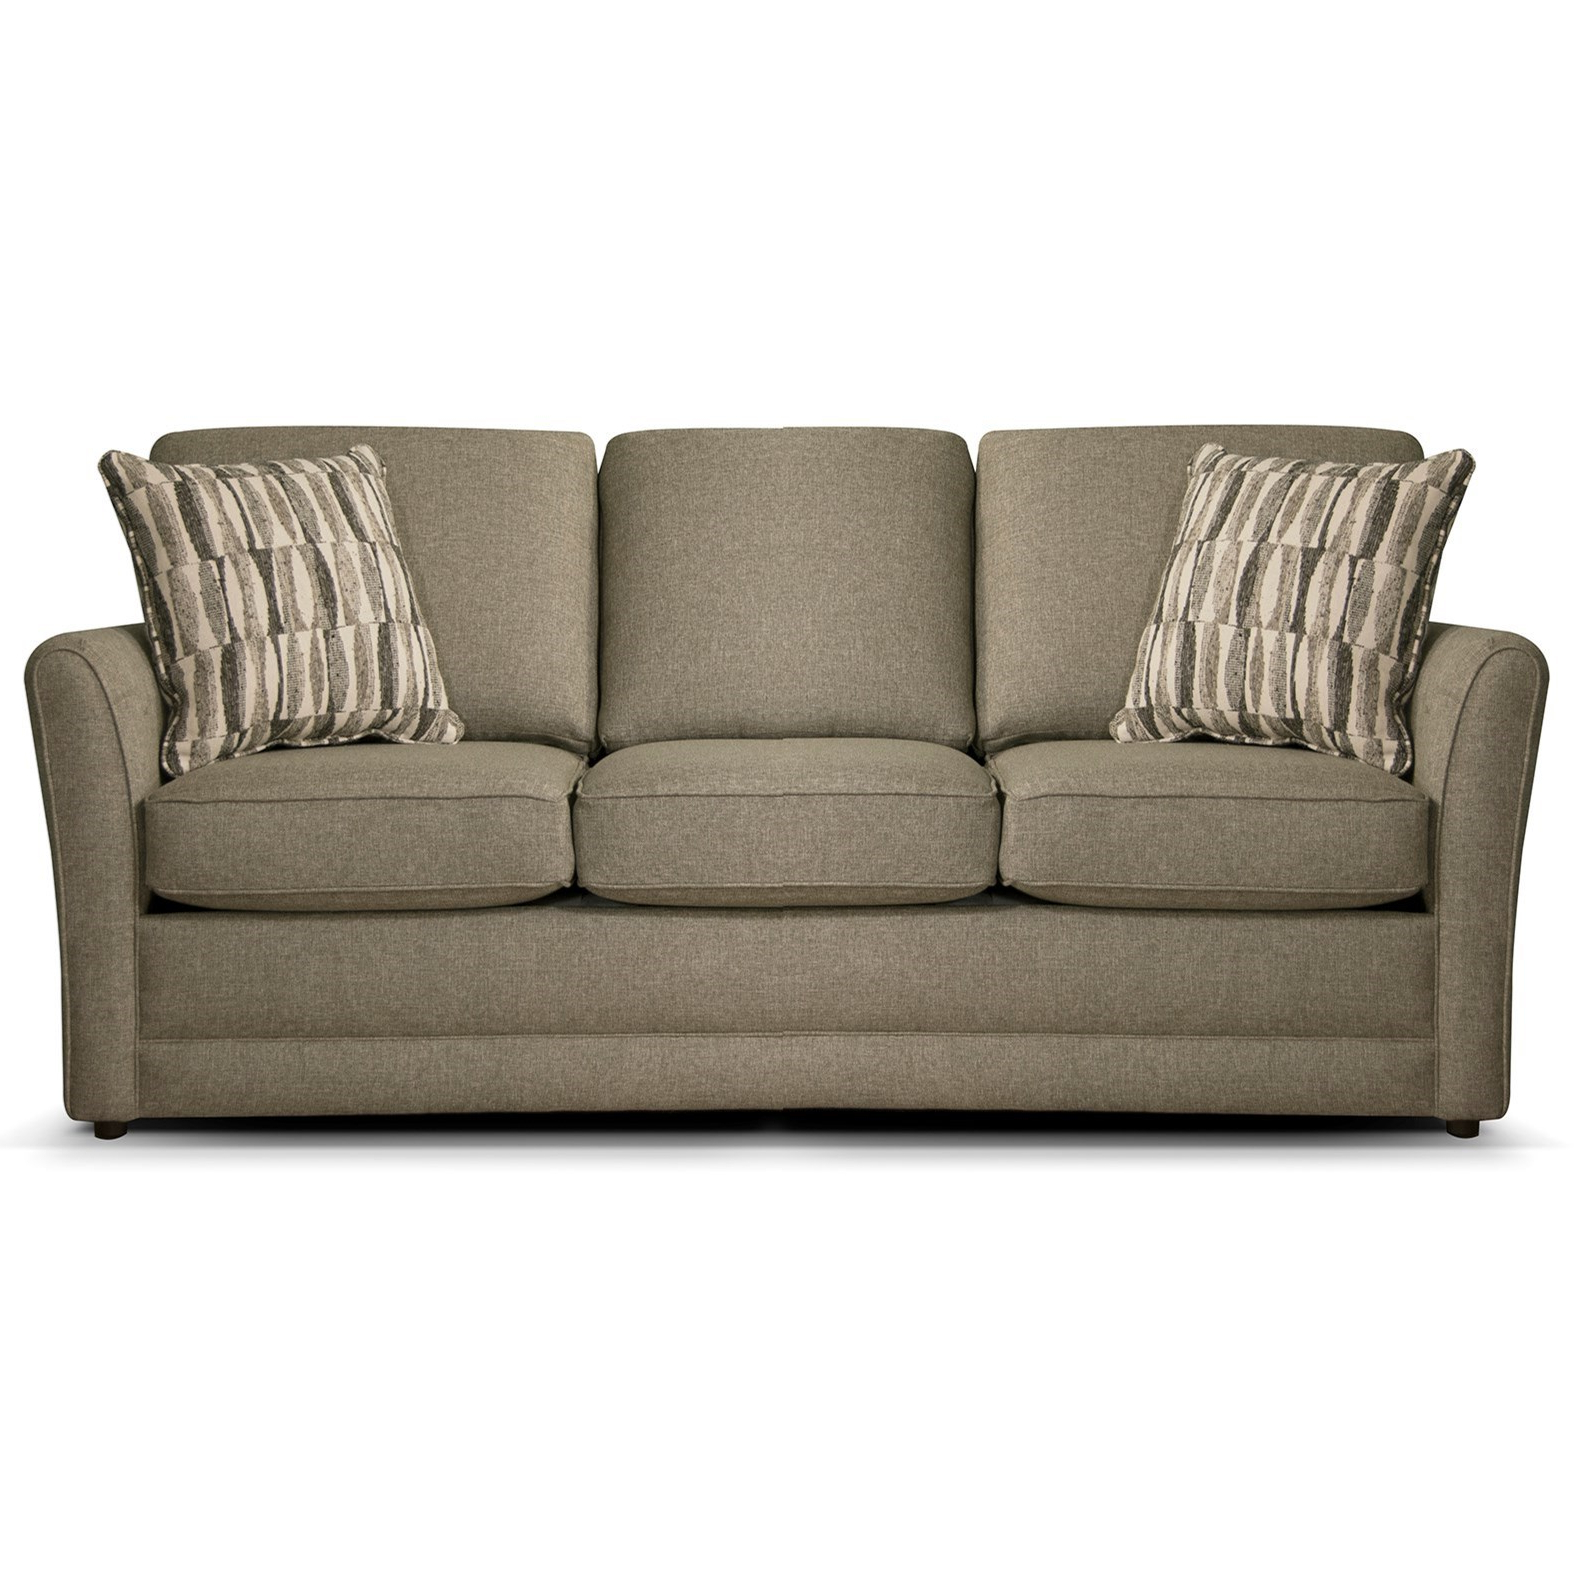 Lindy's Intended For Tripp Sofa With Cushions (Gallery 17 of 20)